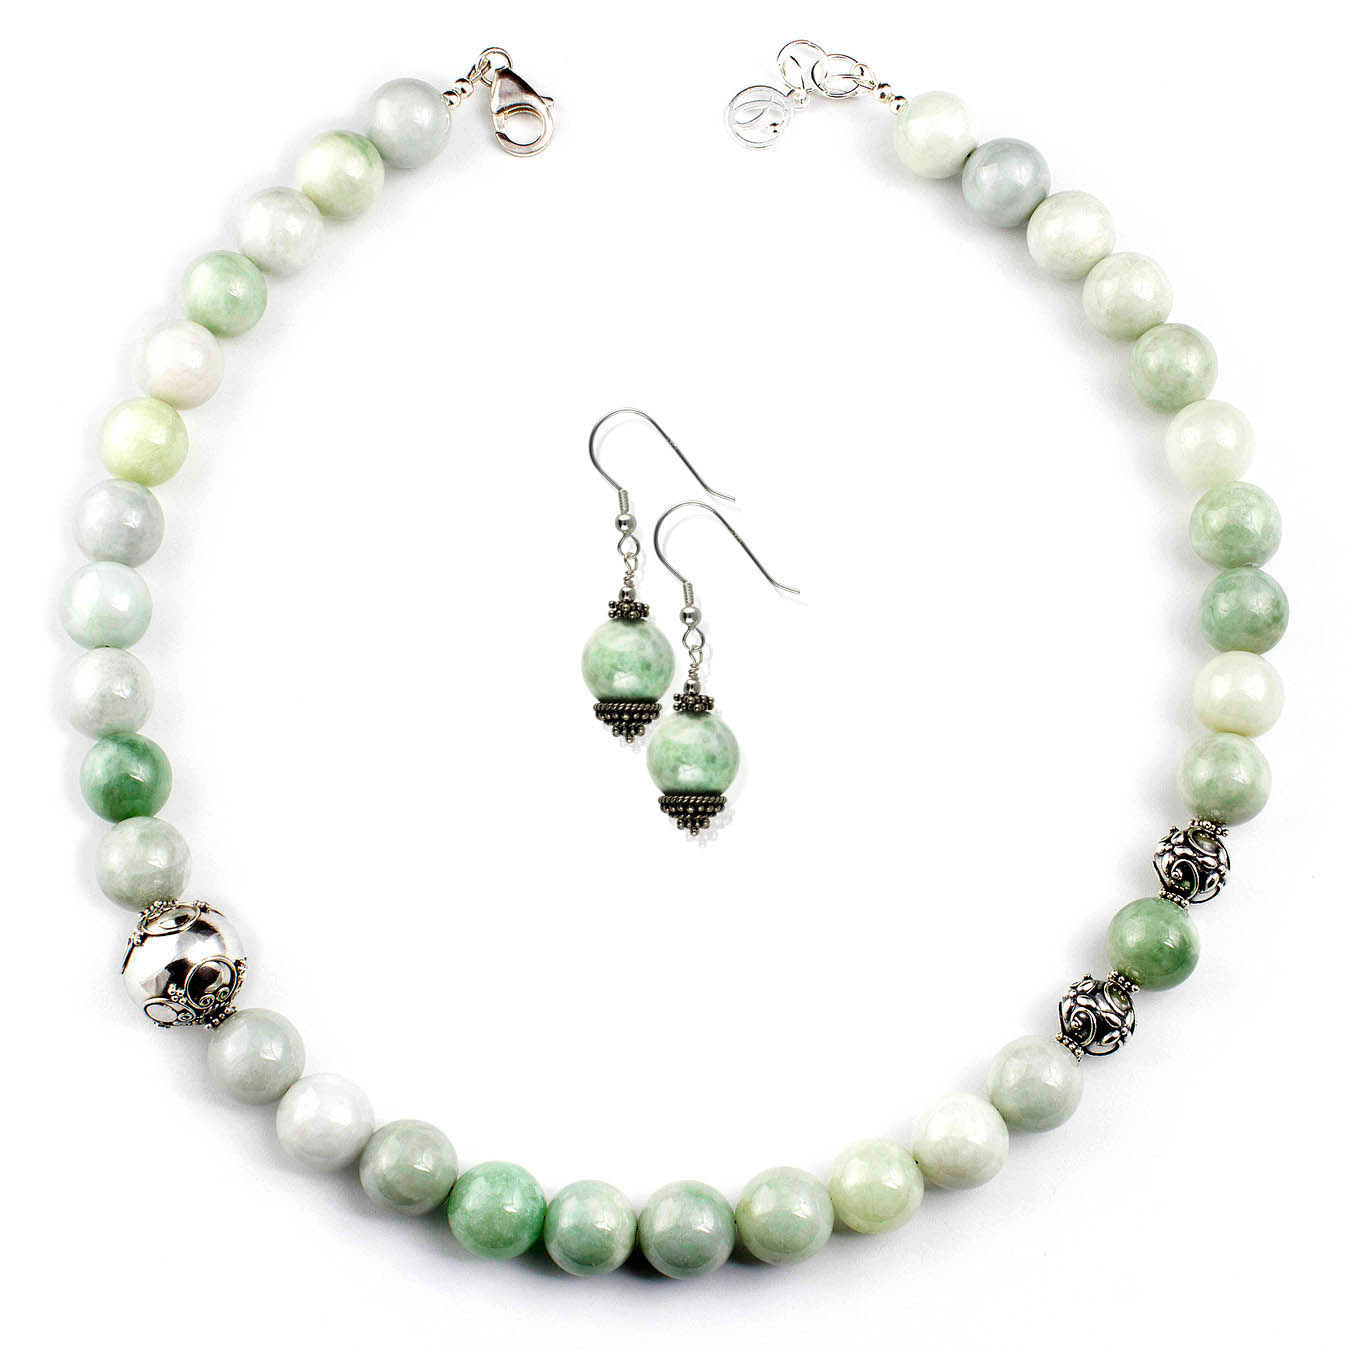 Beaded jewelry necklace made of Burma Jade gemstones and Bali silver